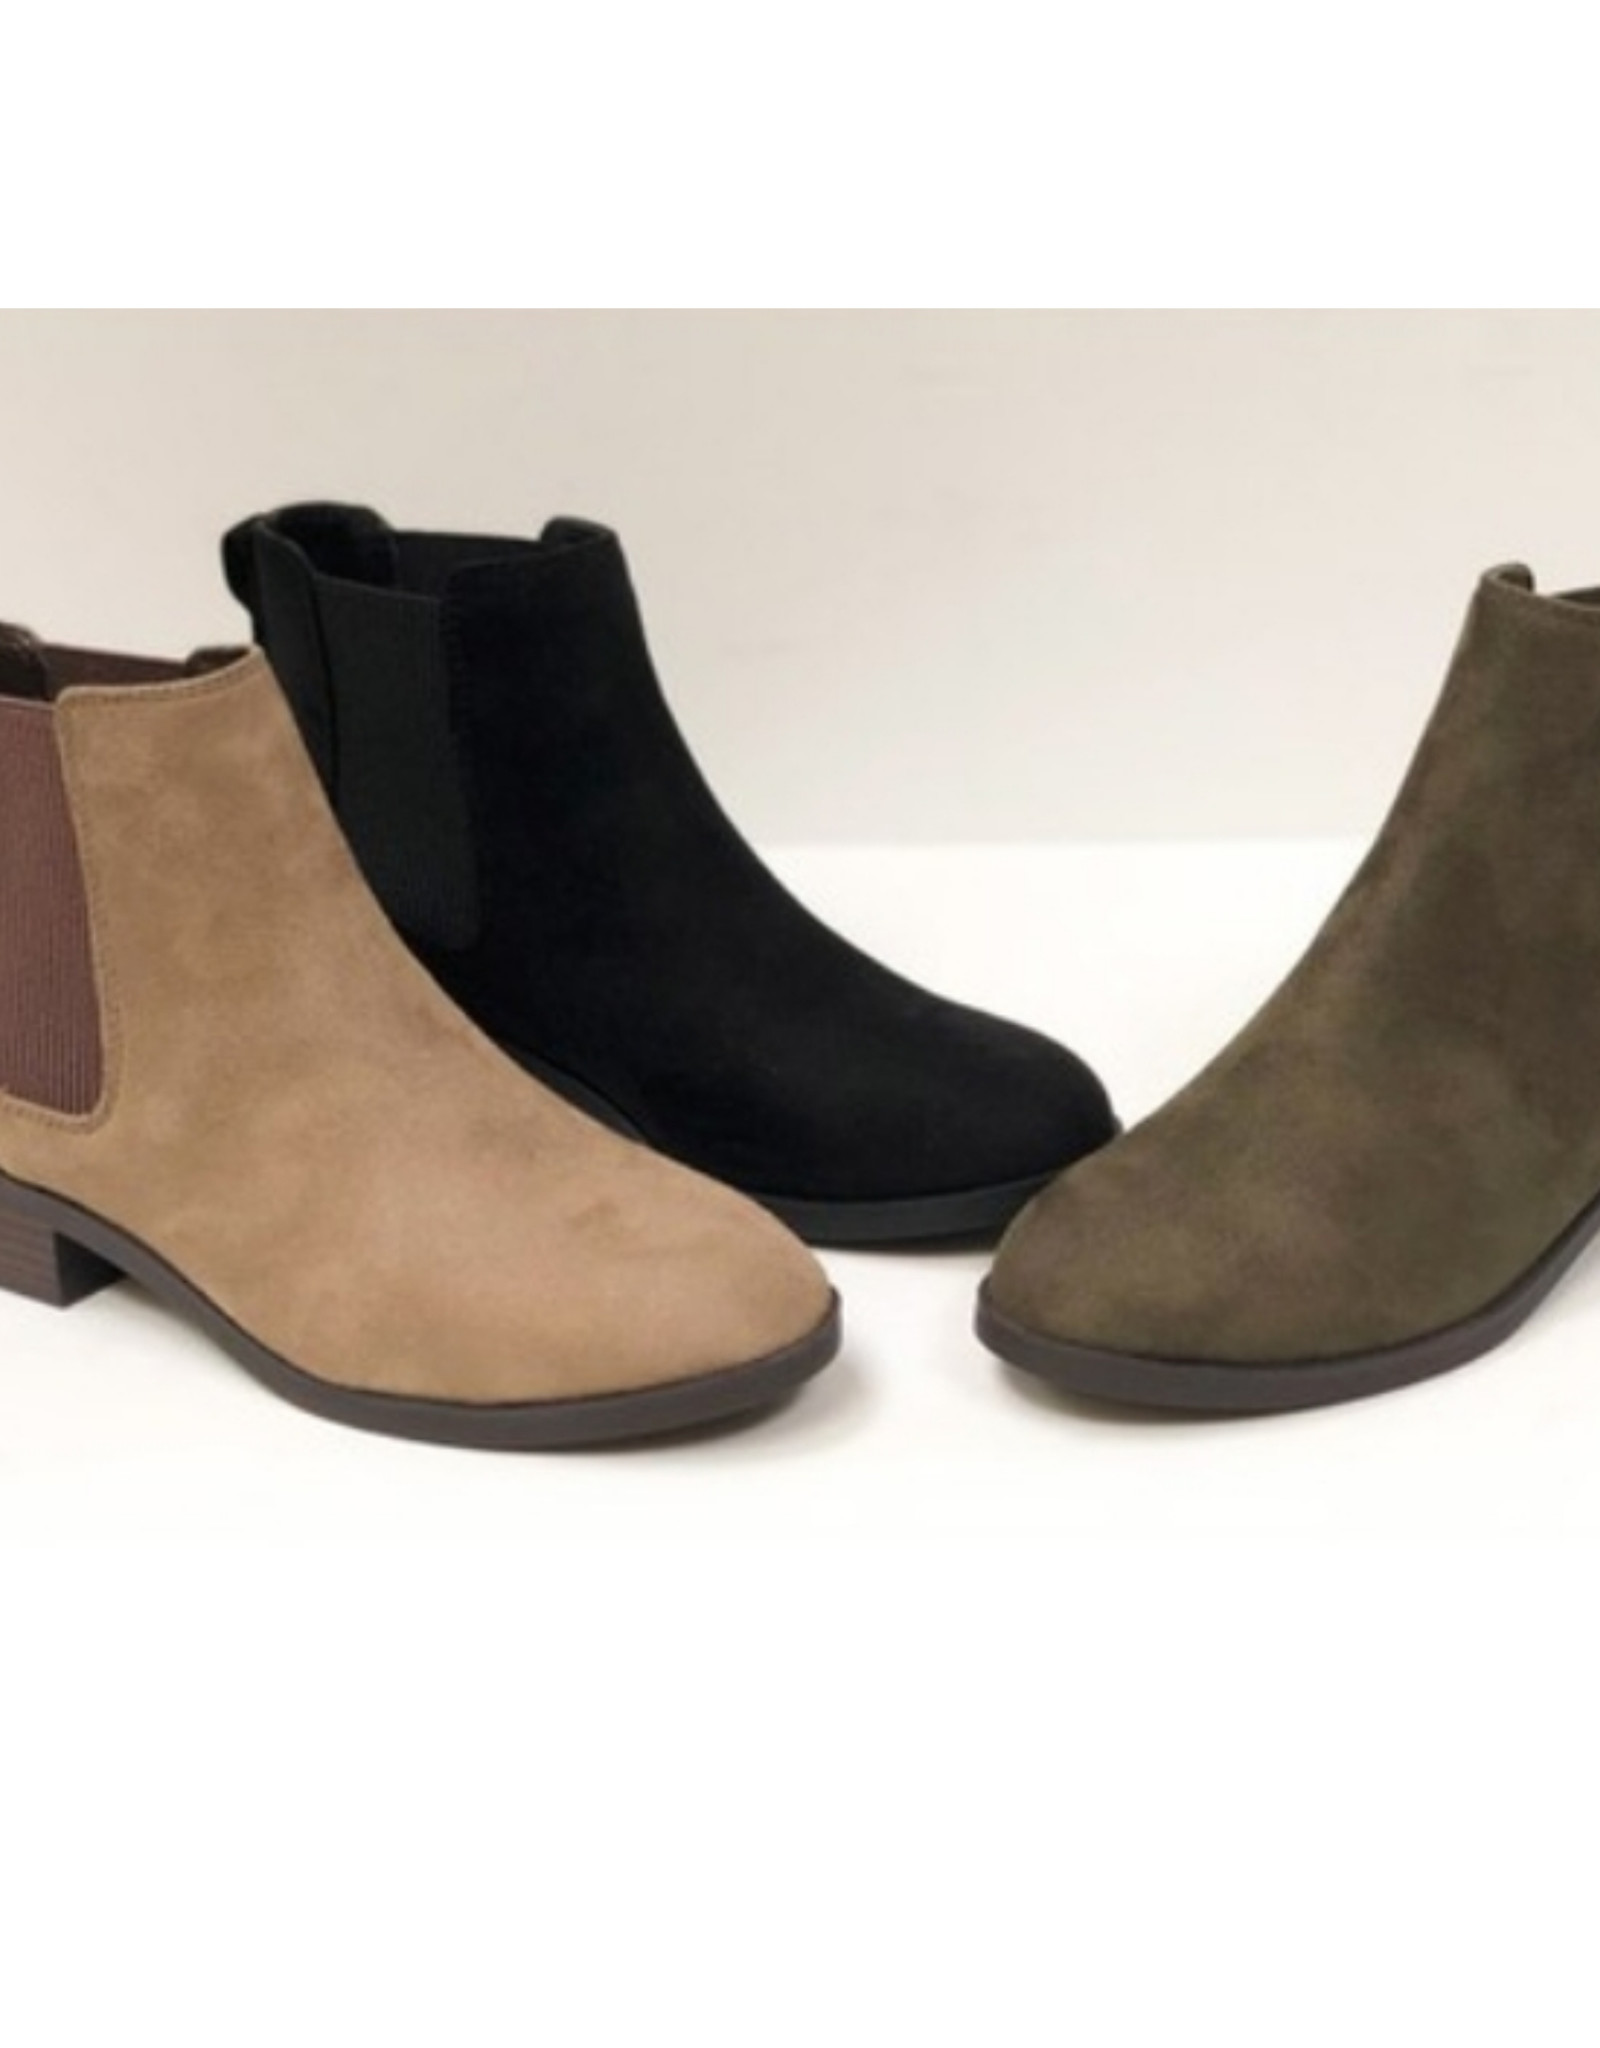 City Classified flat booties